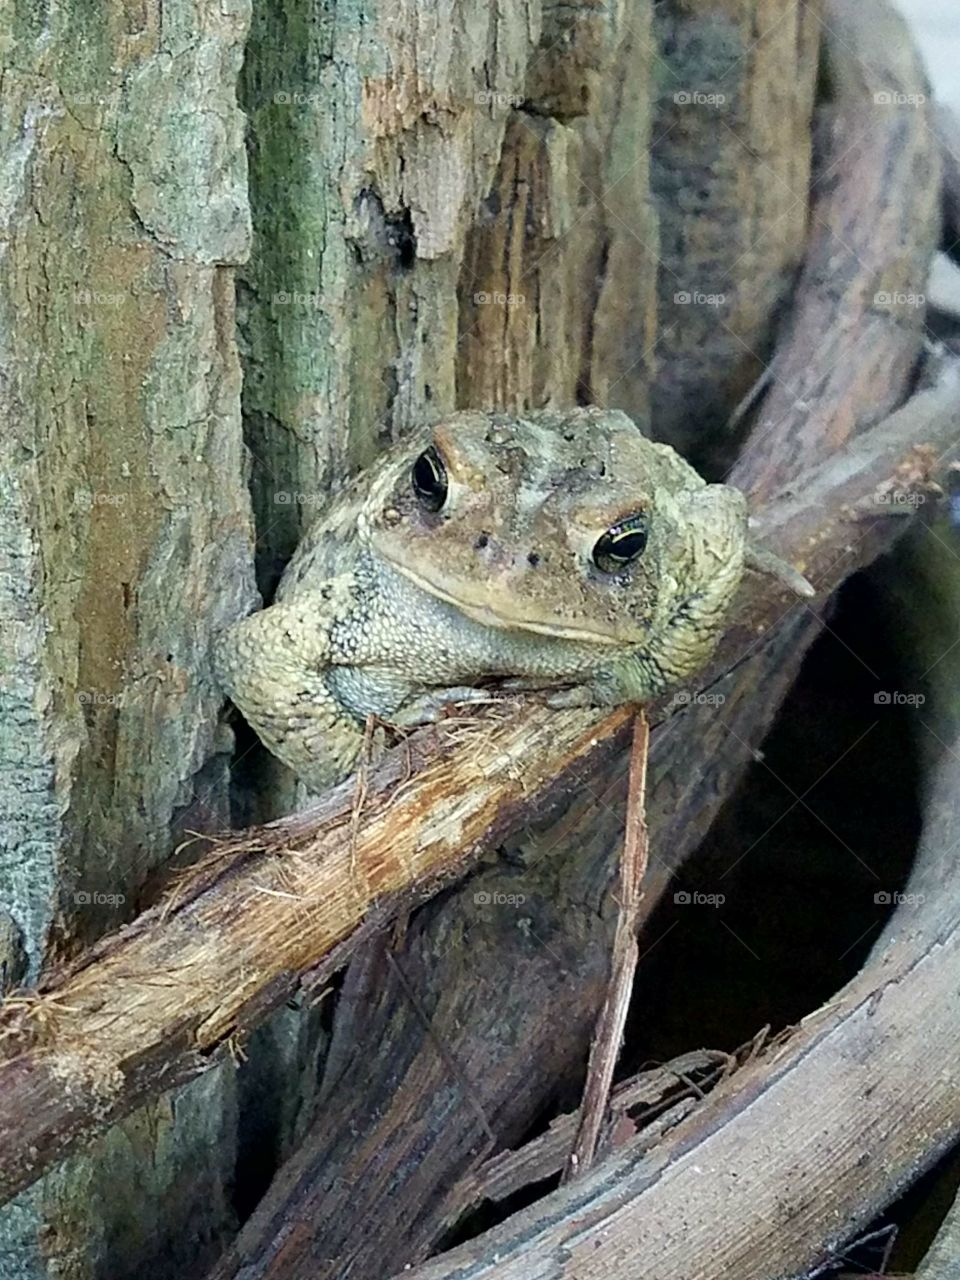 toad perched and camouflaged on tree trunk